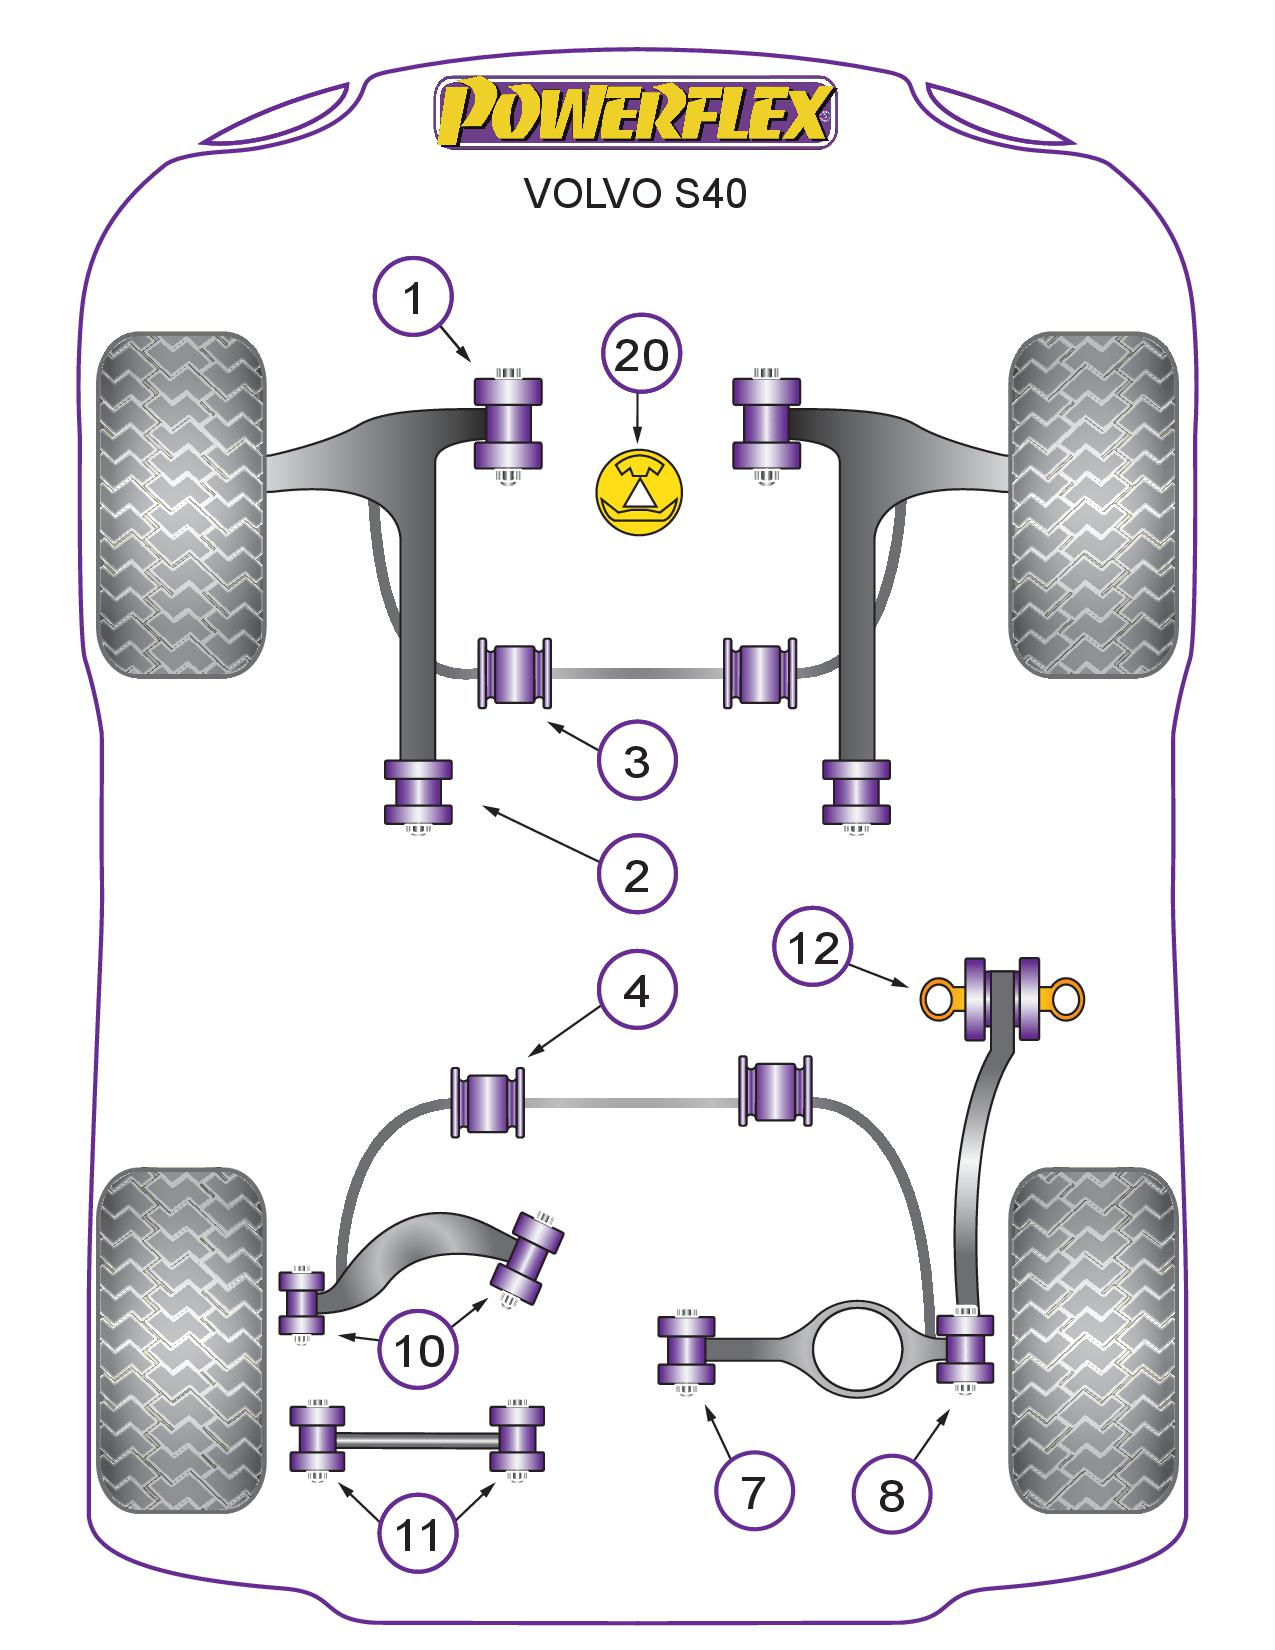 Powerflex Volvo S40 Bushes Suspension Parts Poly Engine Diagram Please Check Mount Bracket Design Use Either Pff19 1220 Or 1222 Neither Are Suitable For Diesel Models